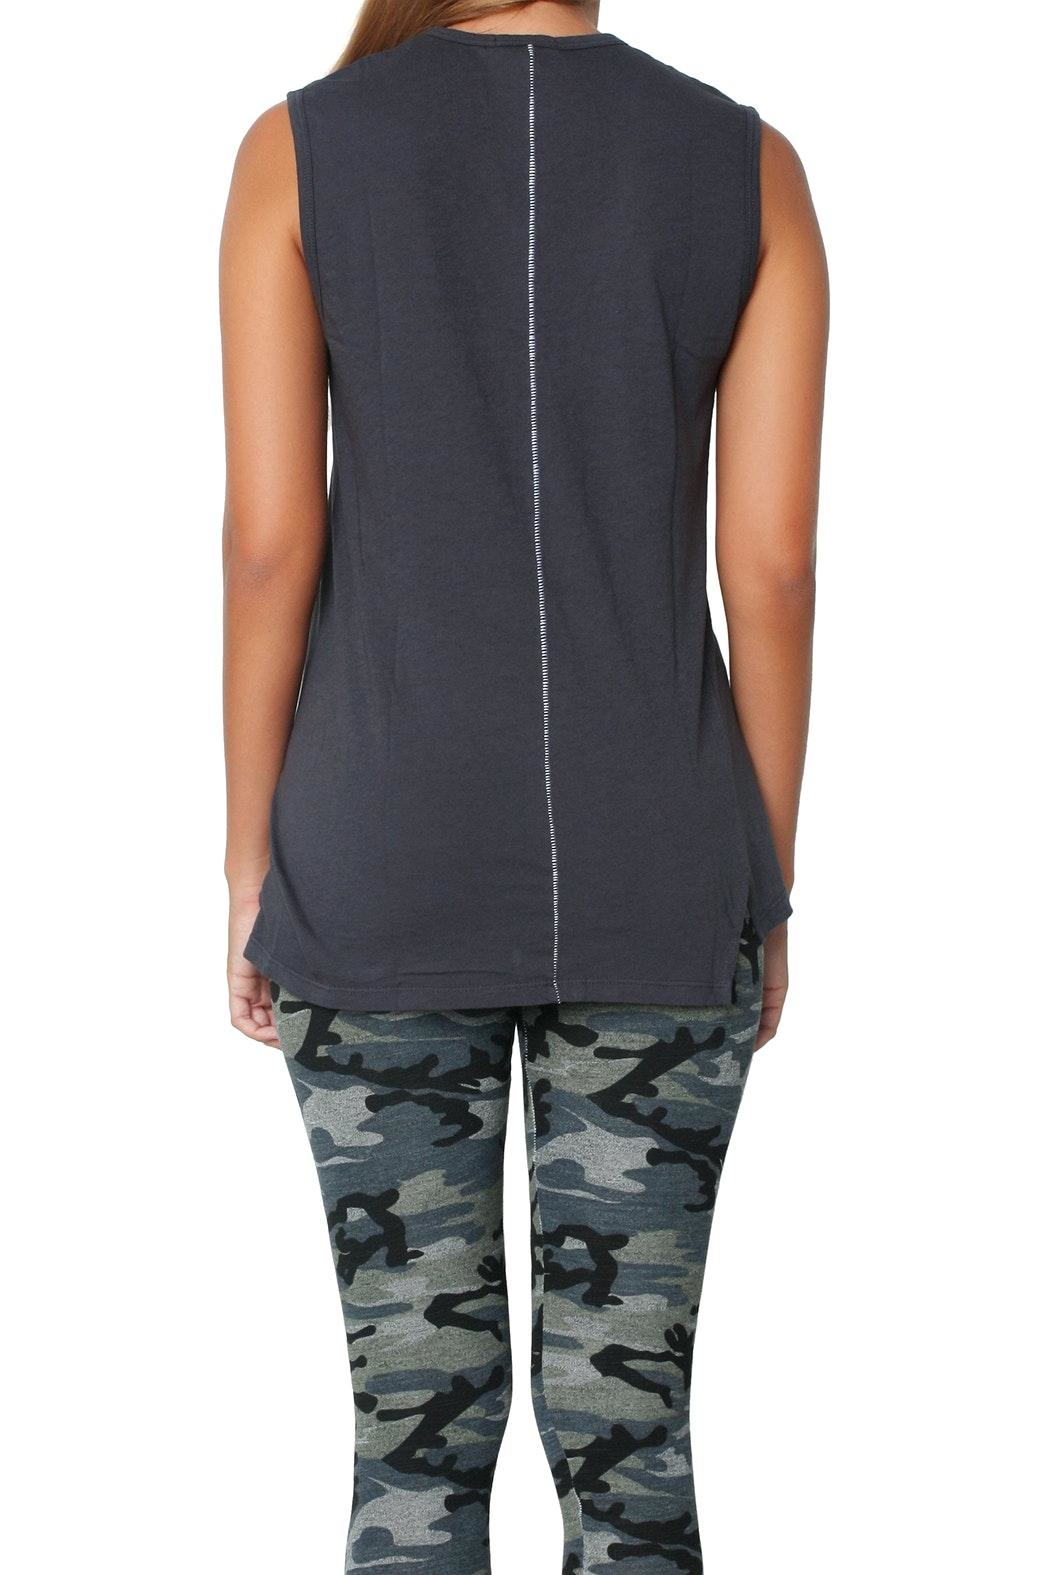 Sundry Ouimerci Asymetrical Tank Top - Back Cropped Image